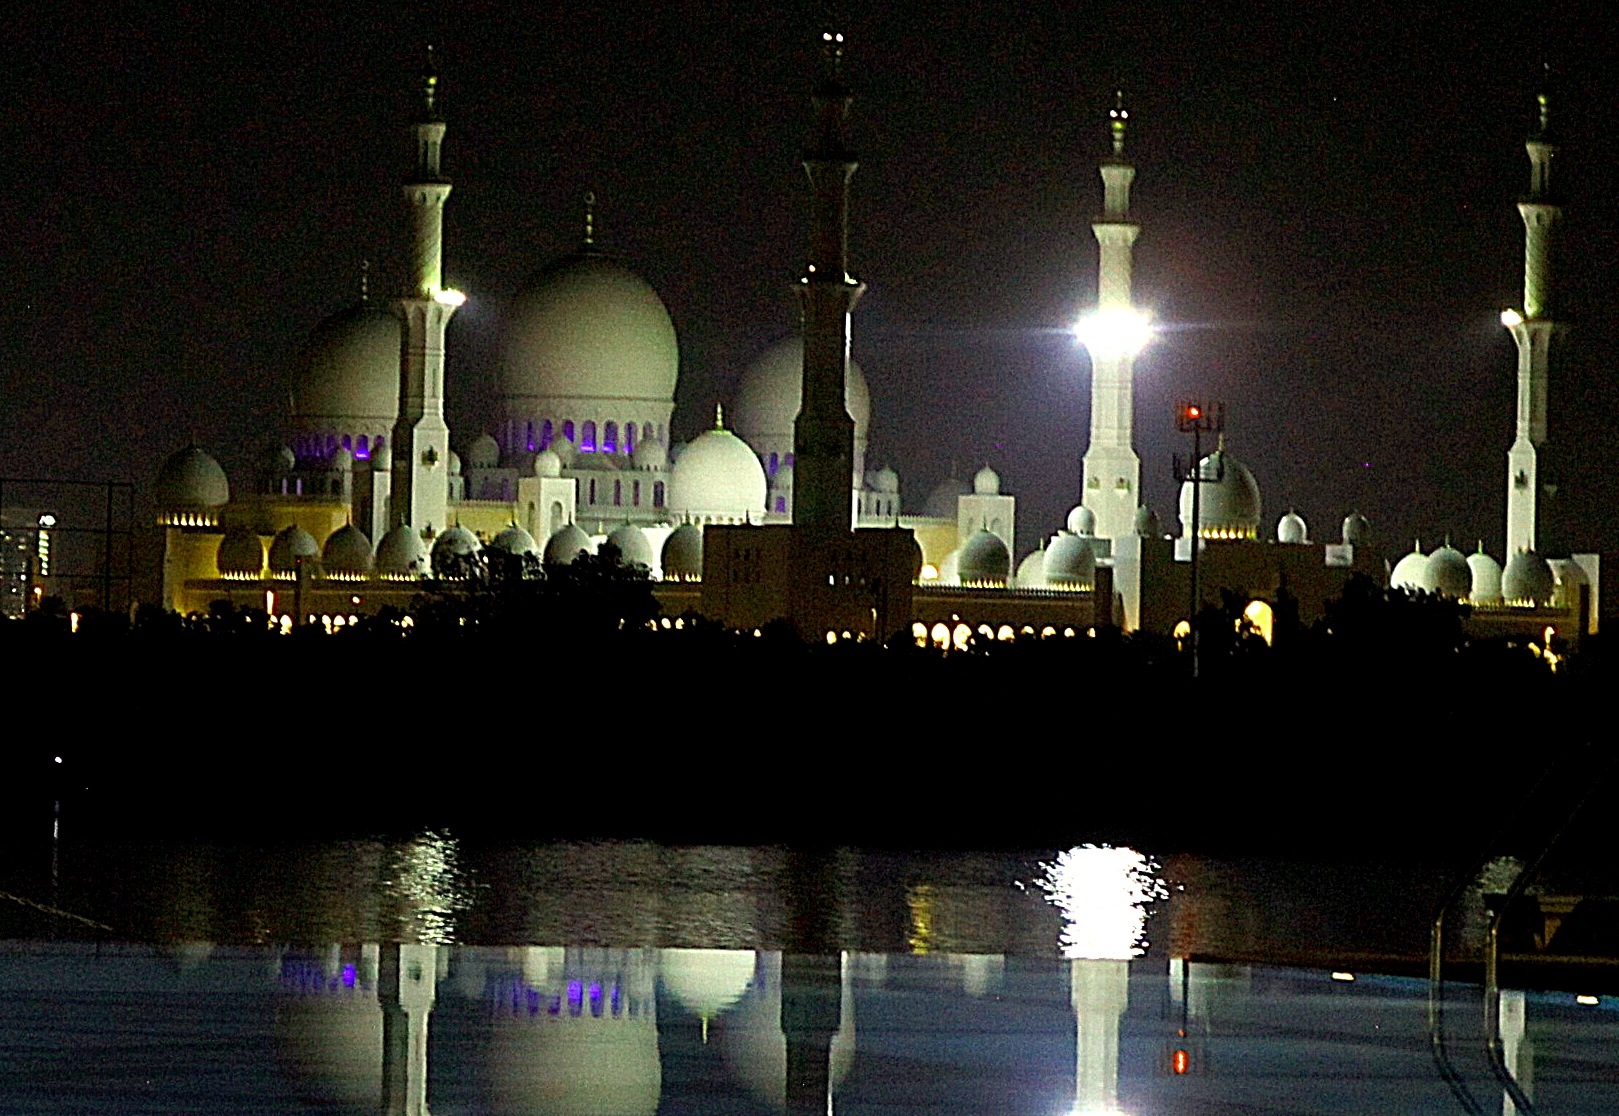 Abu Dhabi Slowly Pursues A Water-Conserving, Cleaner Energy Path